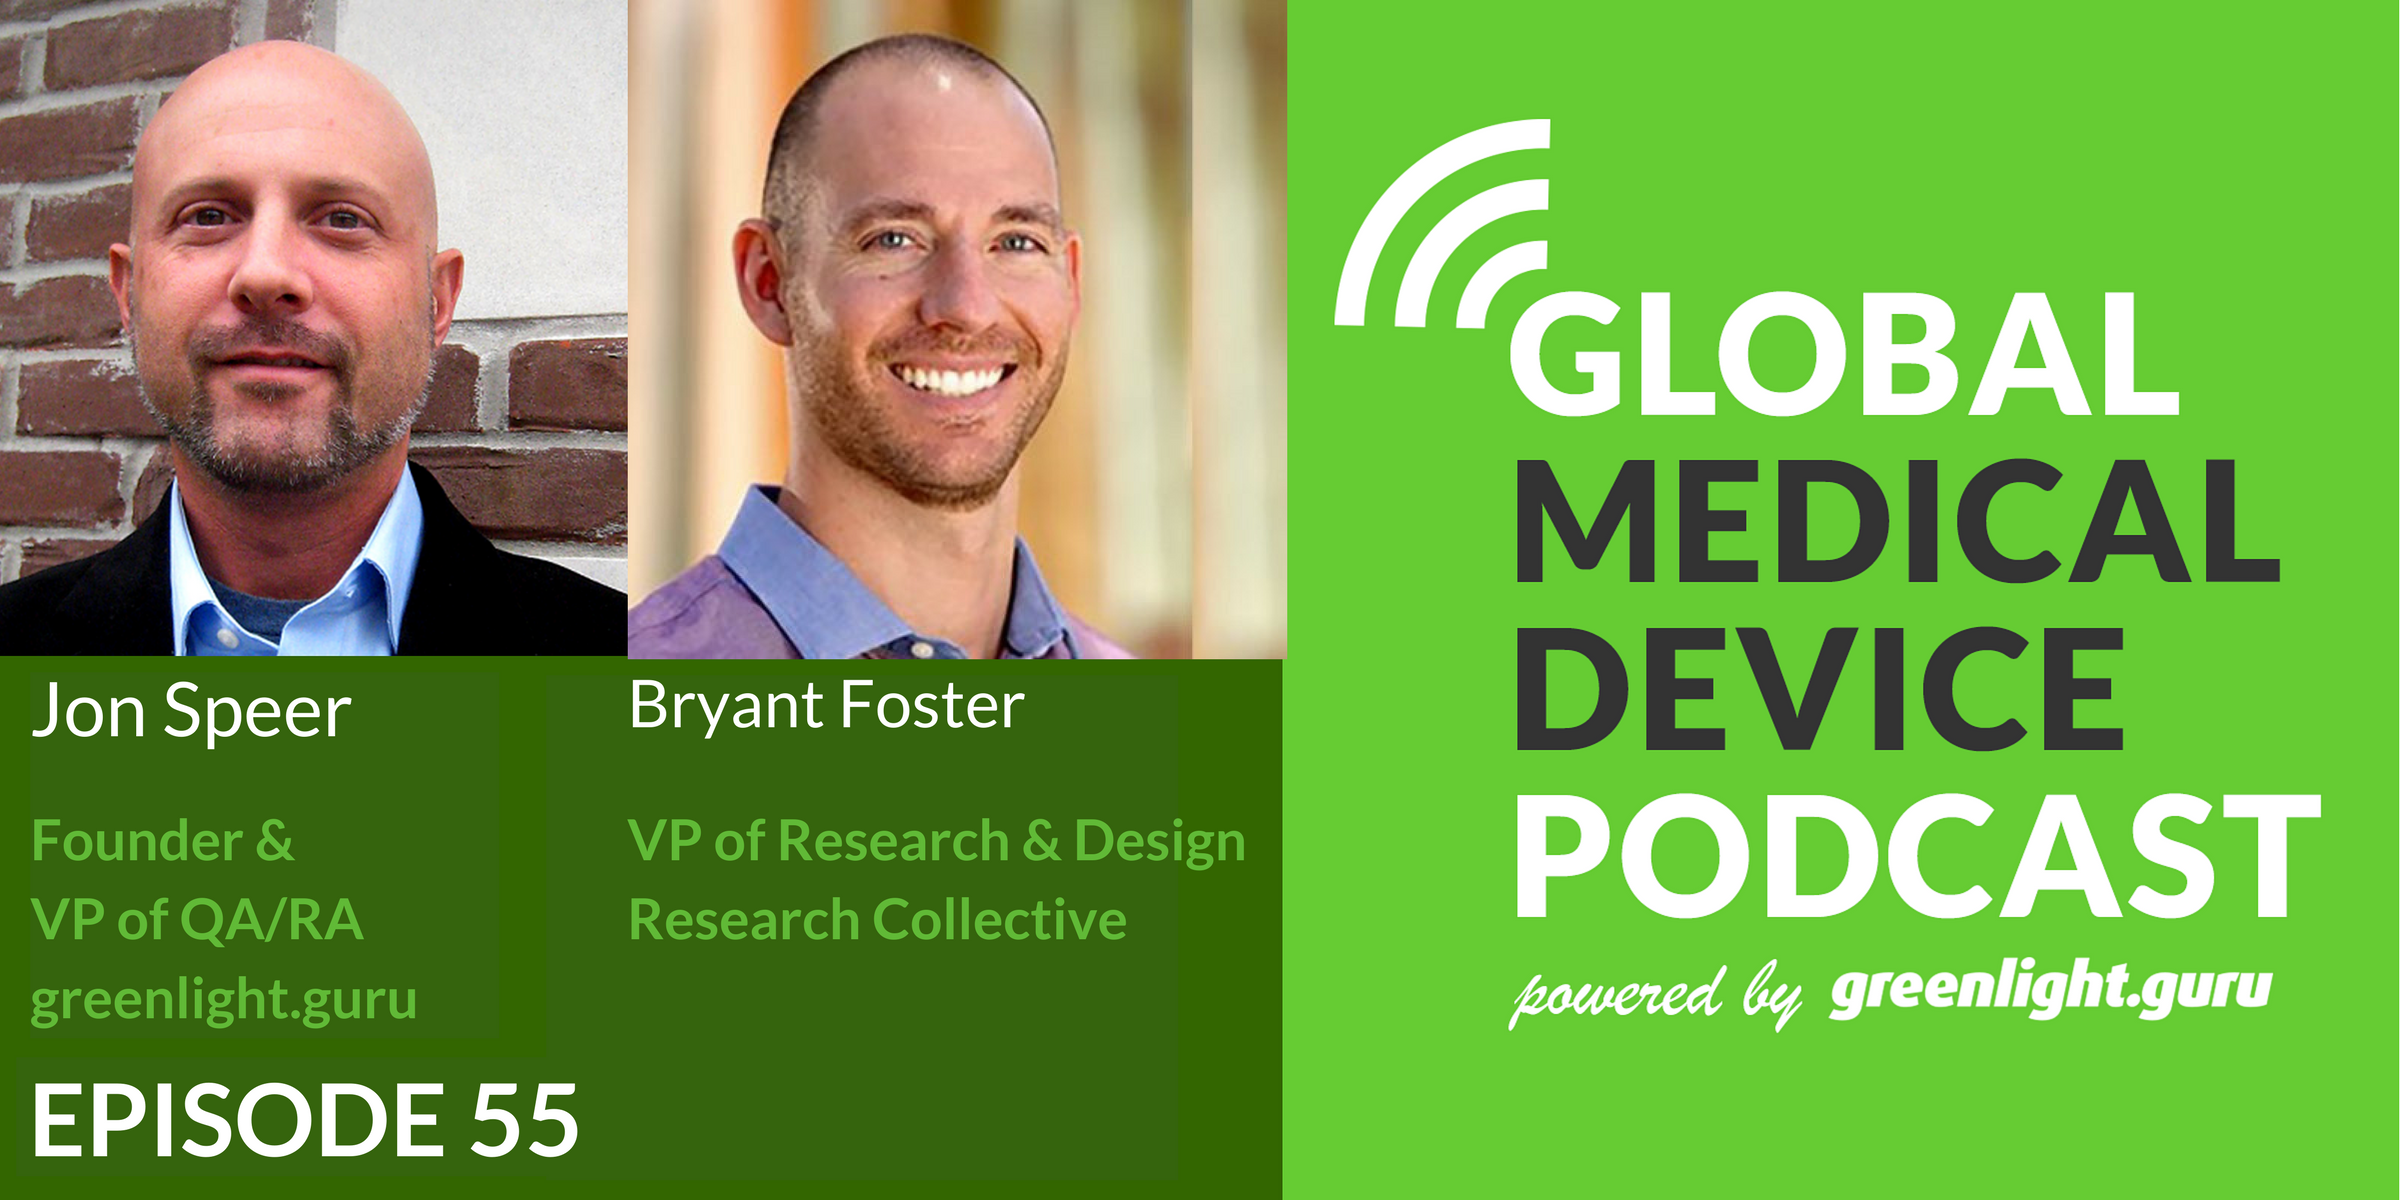 An Overview of What Medical Device Developers Need to Know About Human Factors - Featured Image